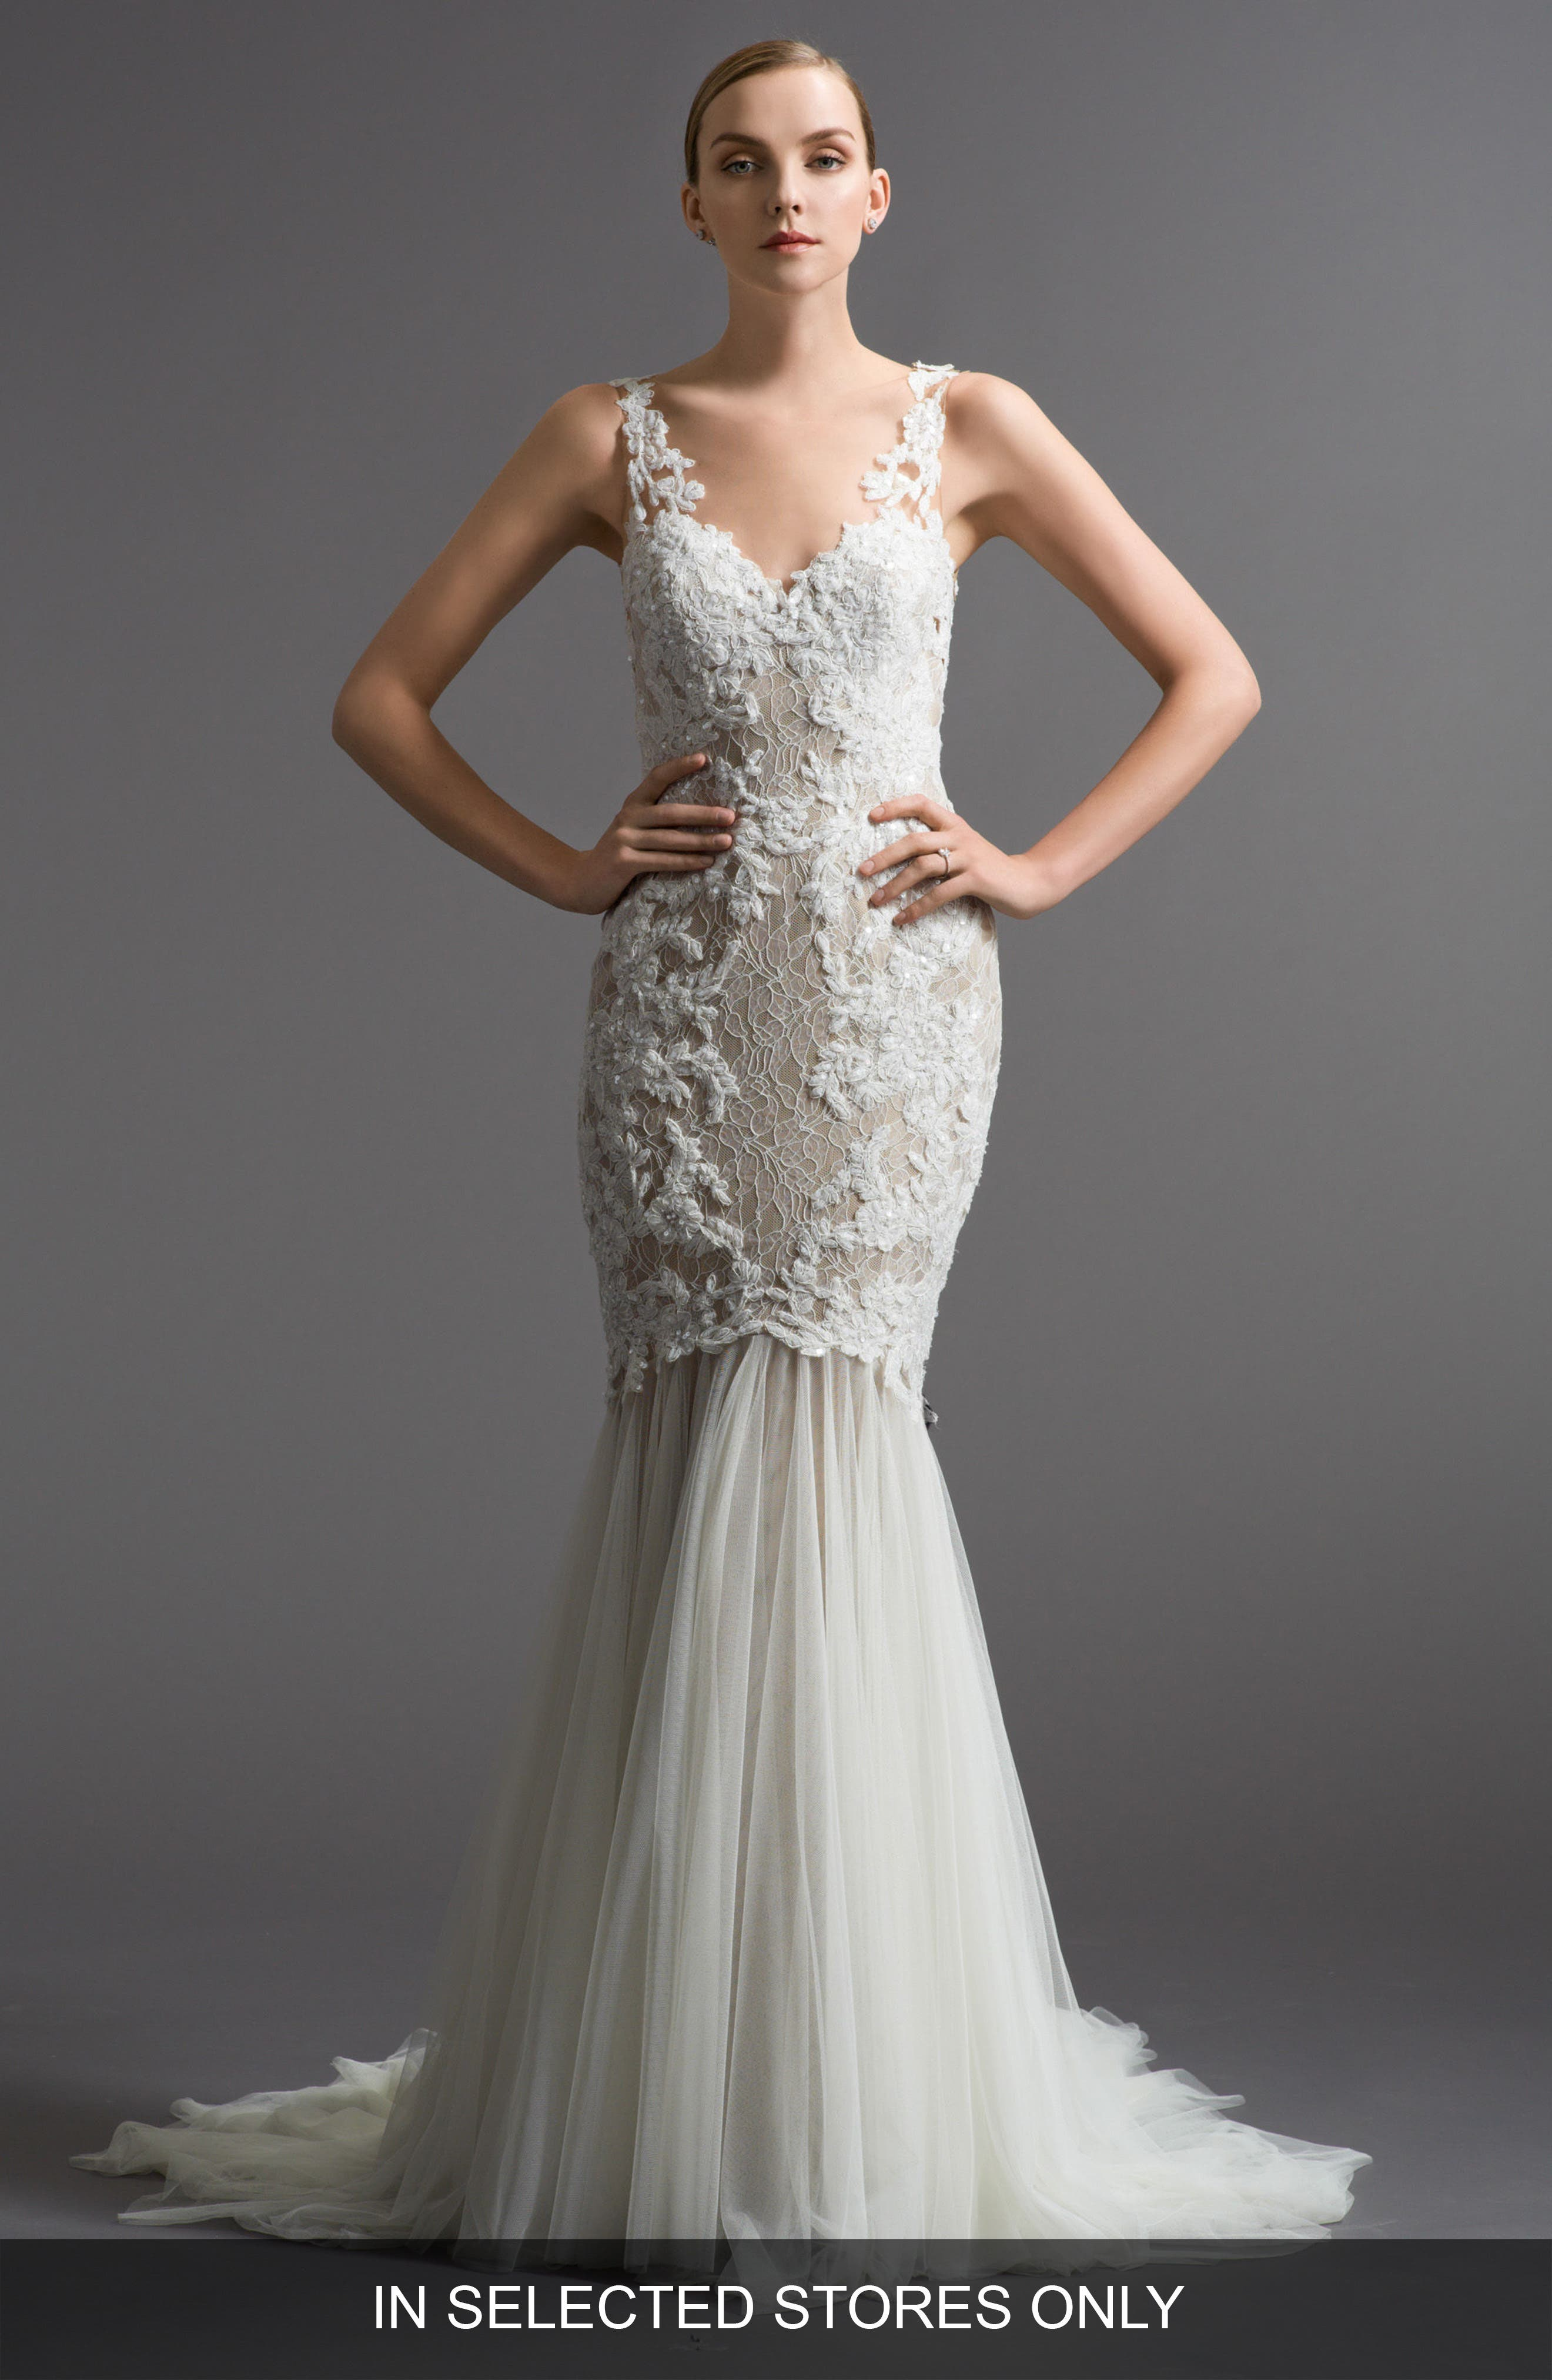 Alternate Image 1 Selected - Watters Cinzia Lace & Tulle Mermaid Gown